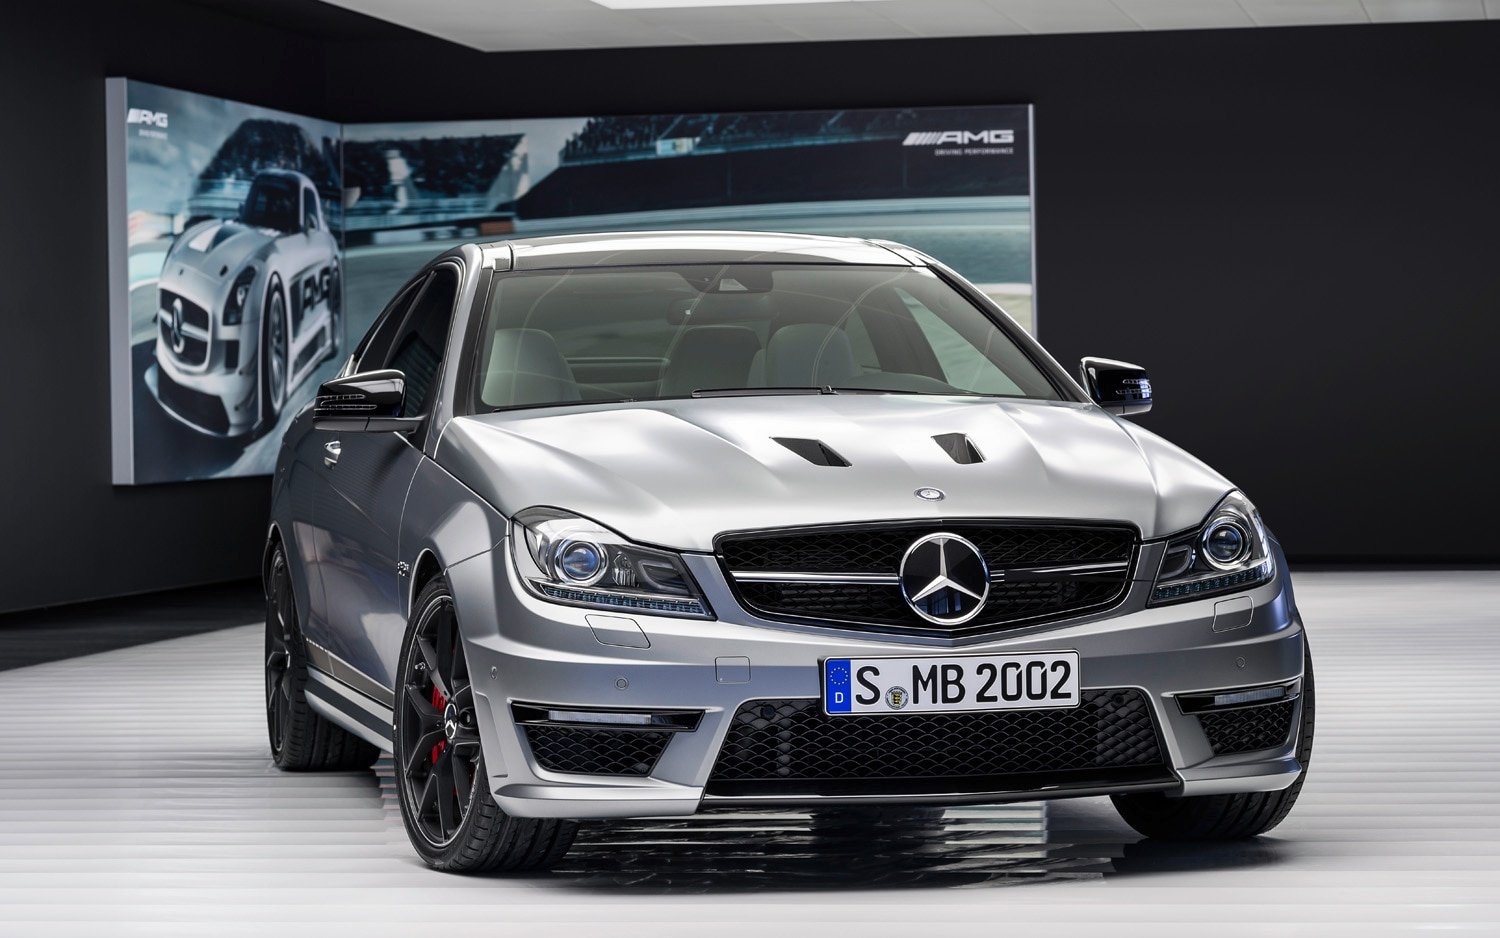 Mercedes benz unveils 2014 c63 amg edition 507 for 2014 mercedes benz c63 amg edition 507 for sale